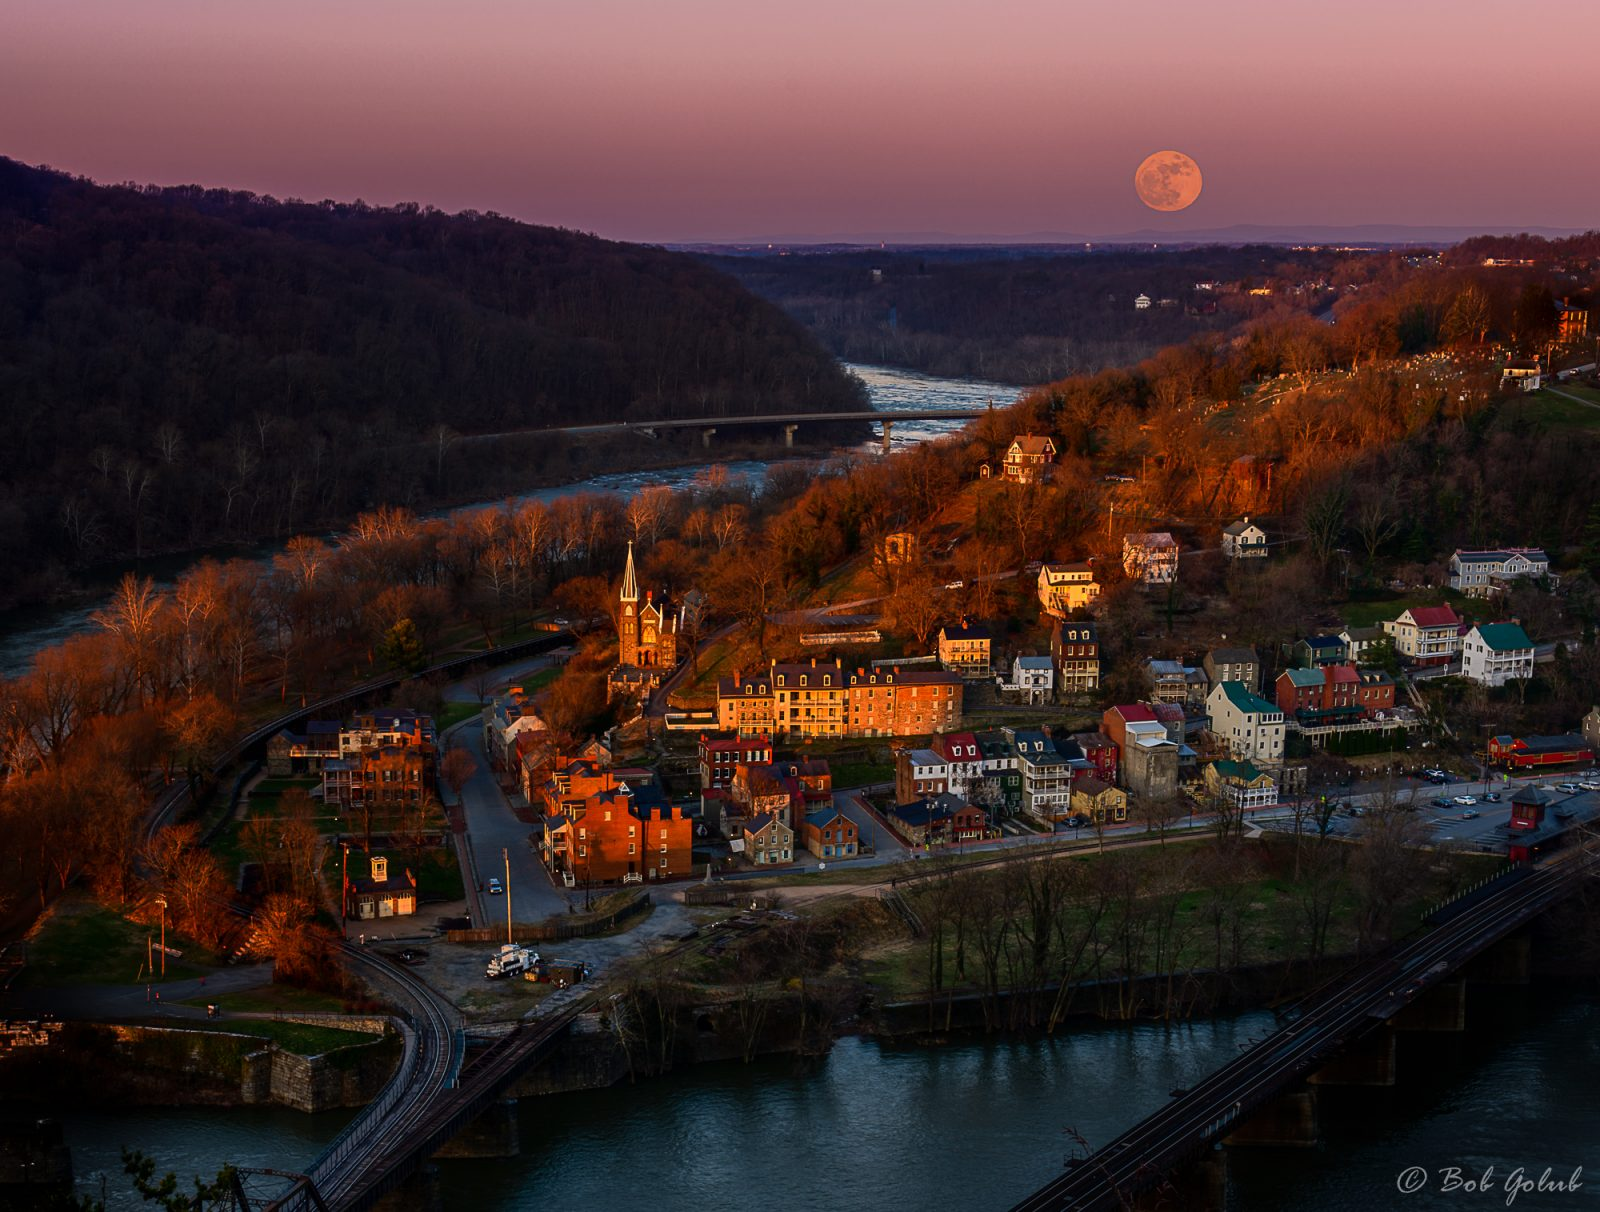 Harper Ferry Sunrise and Moonset